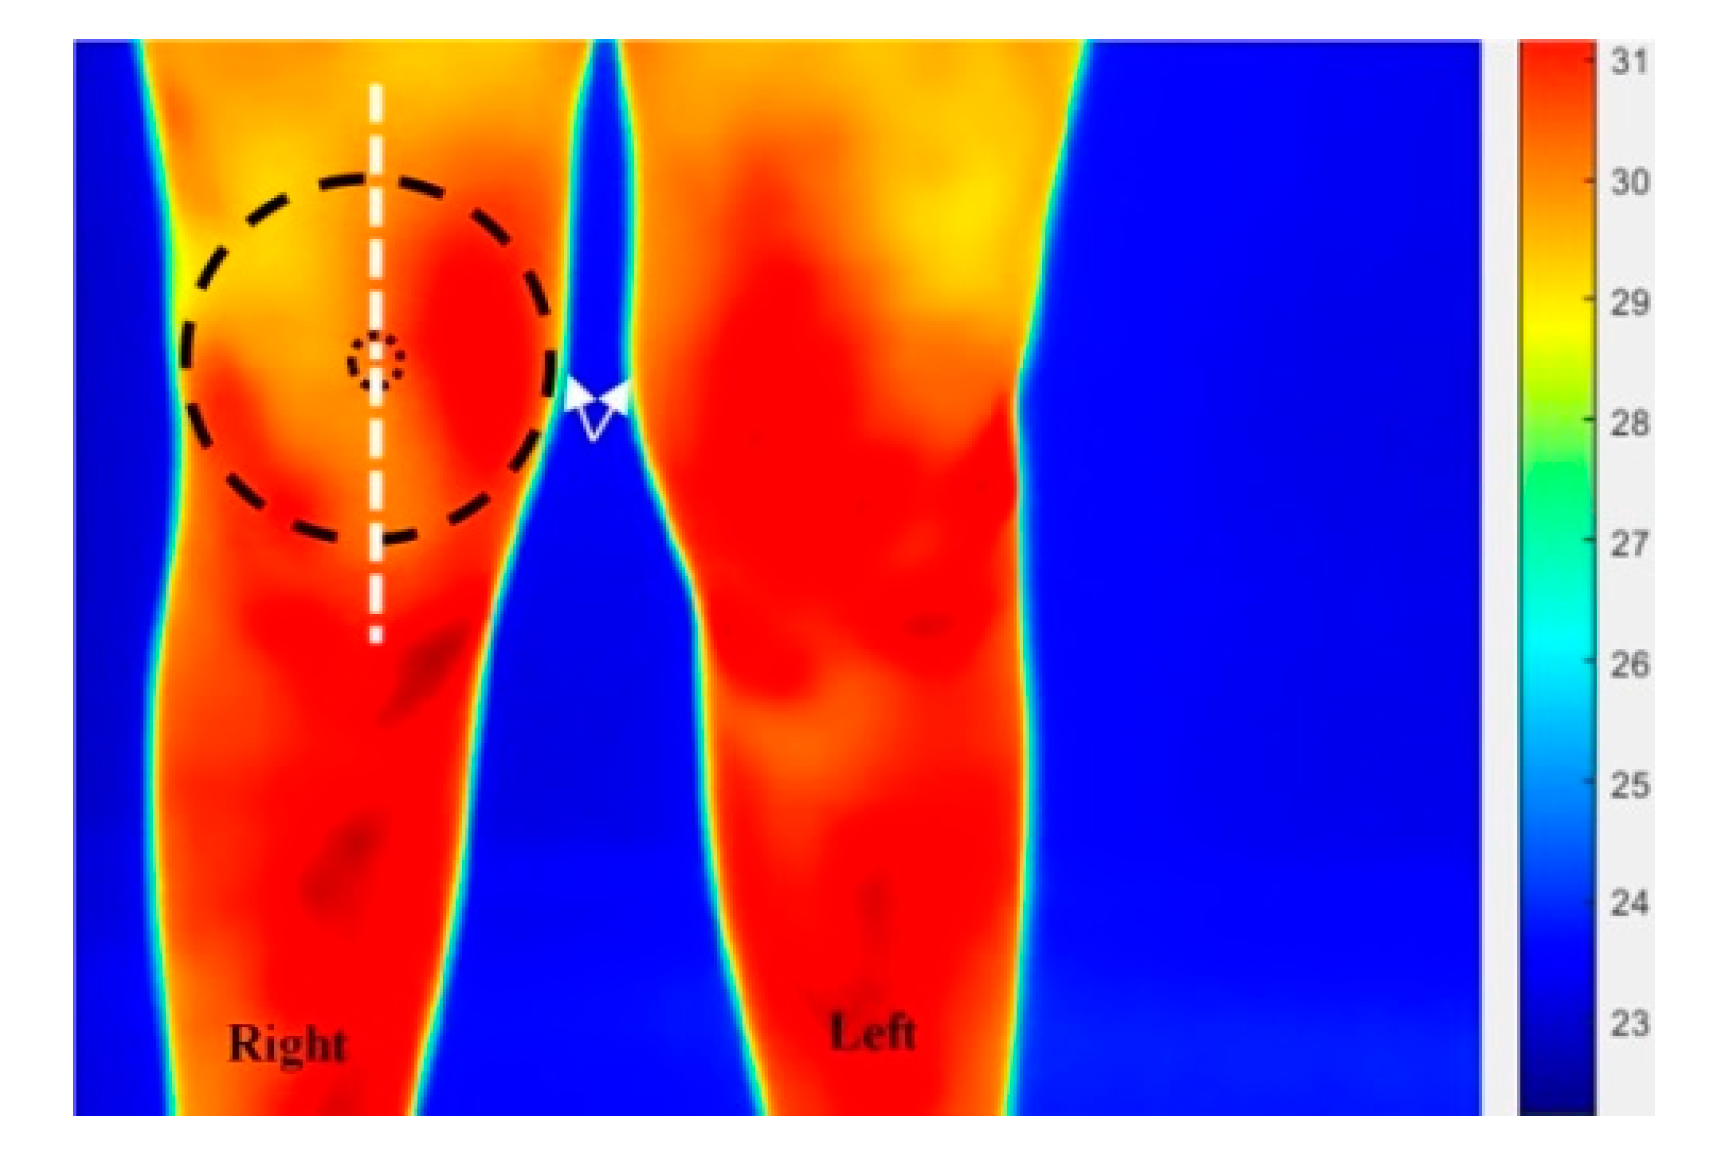 Technologies | Free Full-Text | Thermal and Visual Imaging to Assist with  Juvenile Idiopathic Arthritis Examination of the Knees | HTML